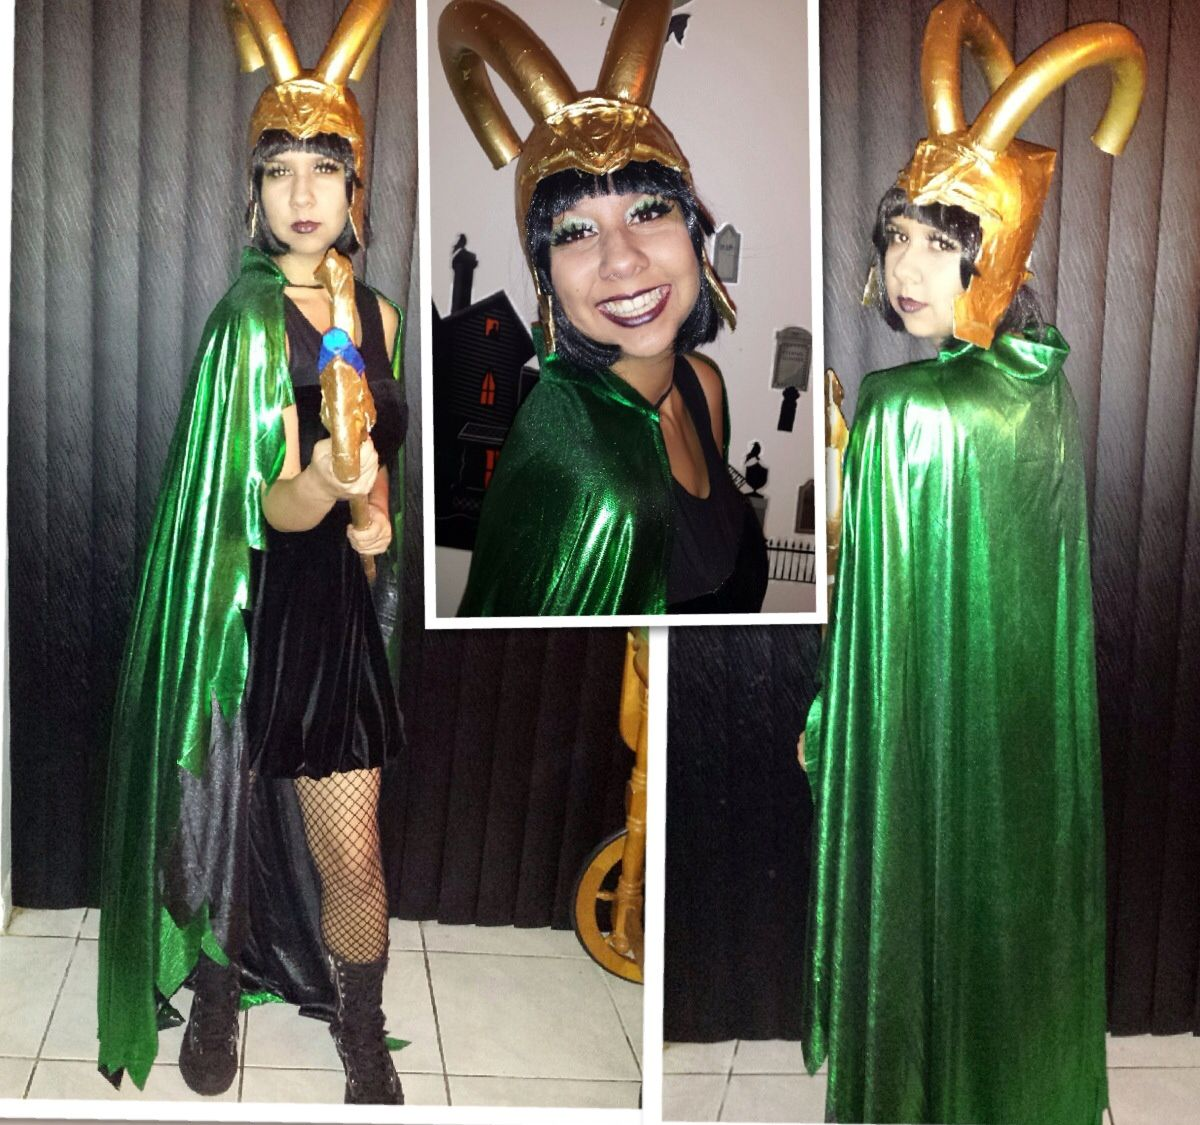 my completely homemade girl loki costume that was under 10 dollars